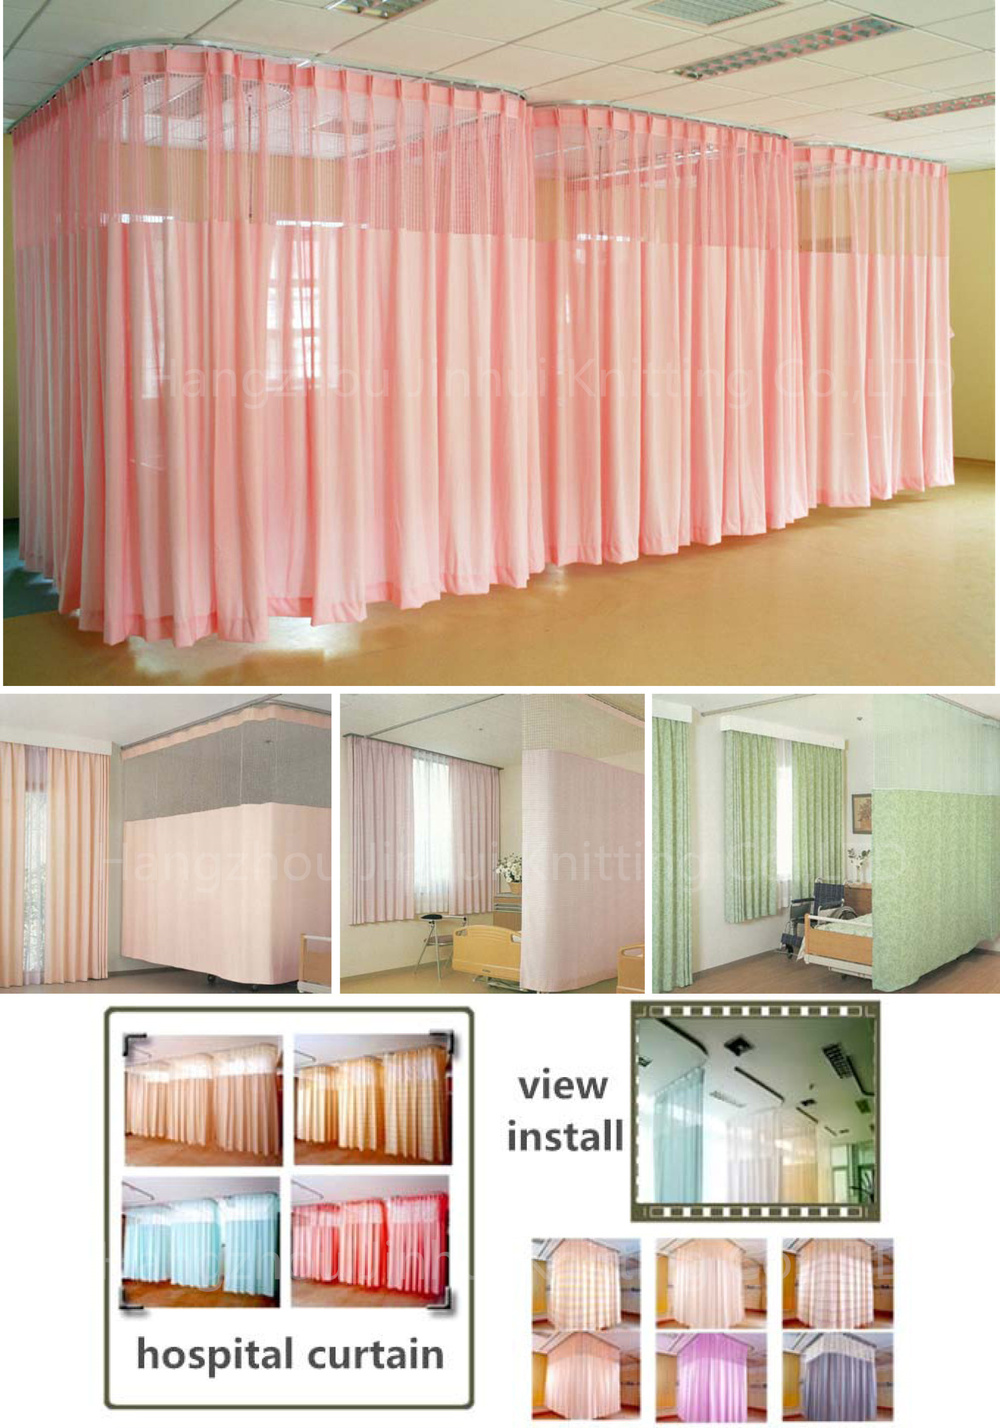 Polyester Multi Color Flame Retardant Hospital Curtains Fabric